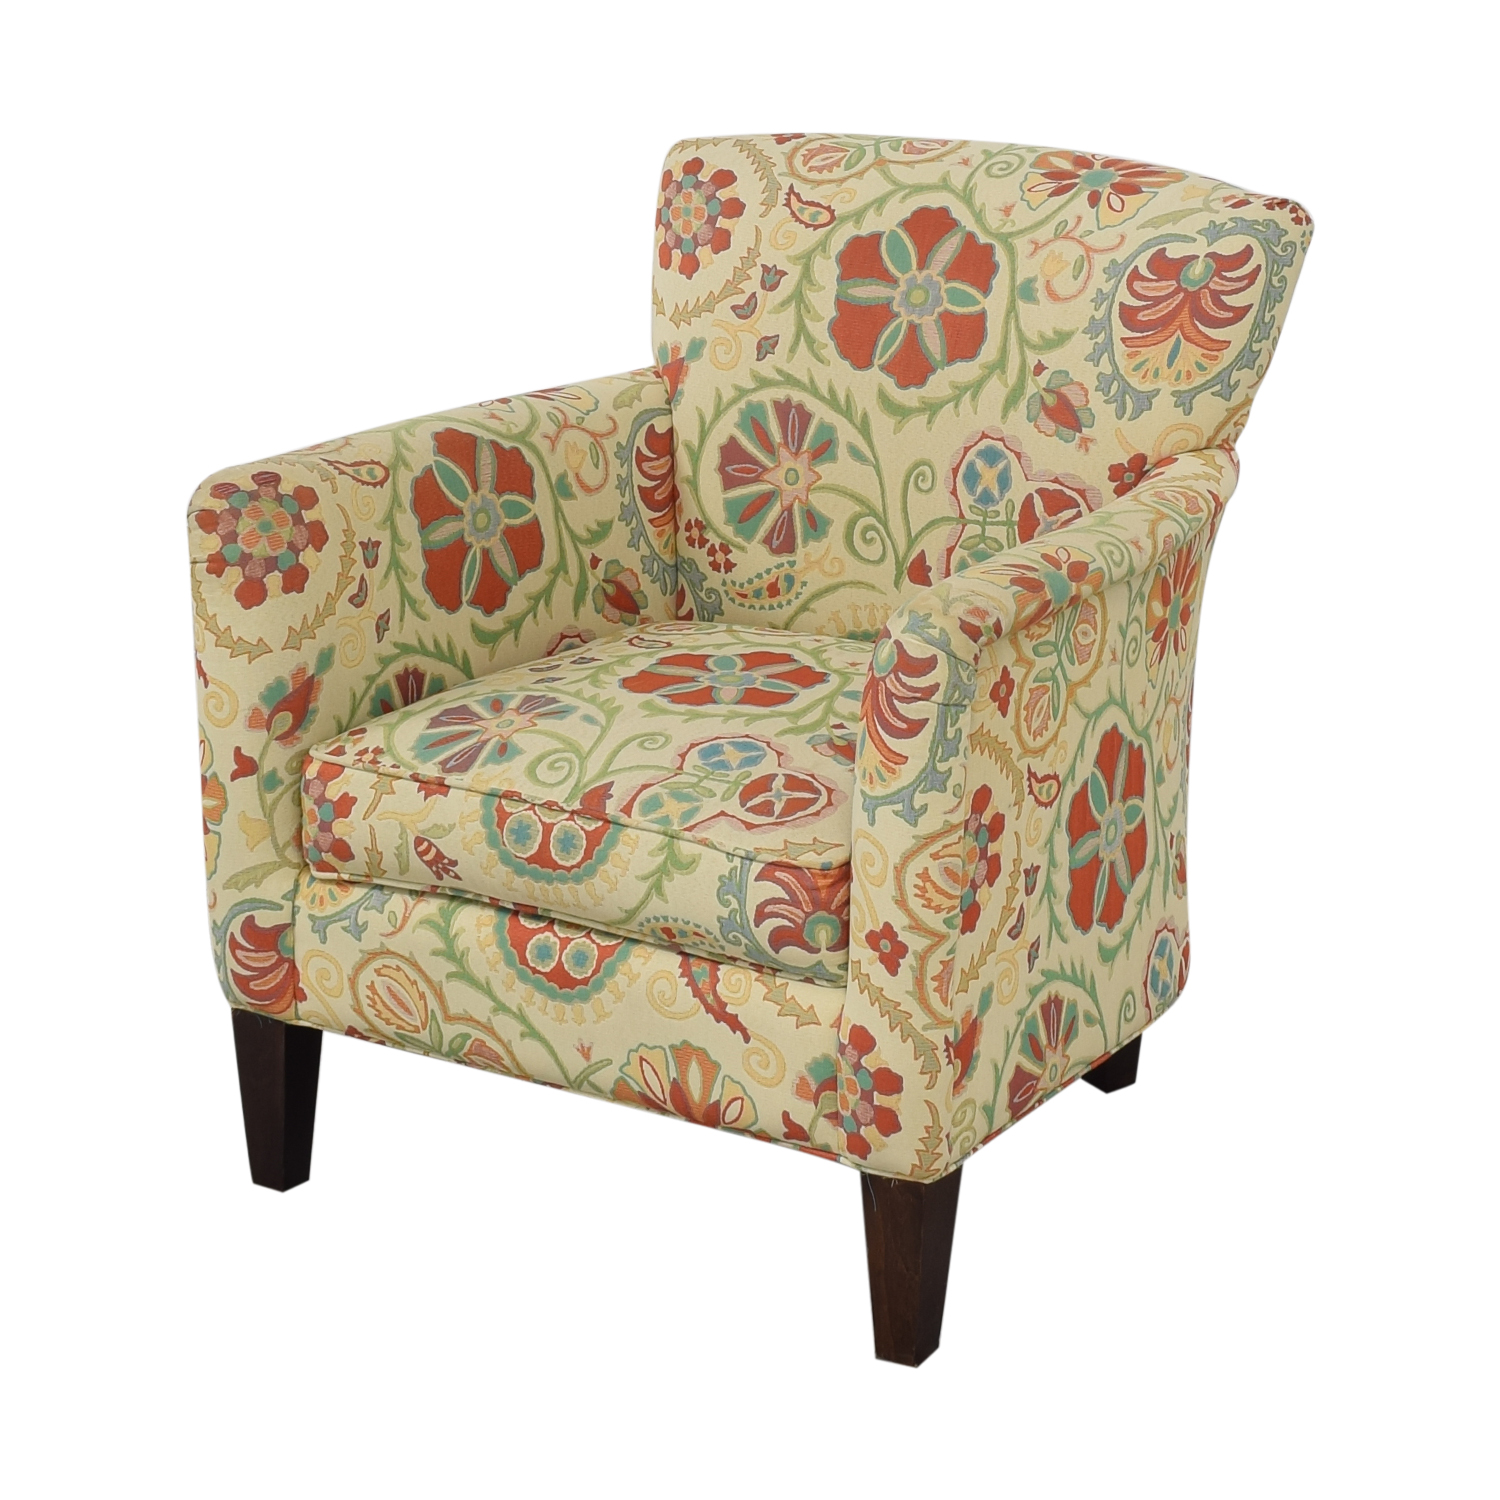 Crate & Barrel Crate & Barrel Upholstered Printed Armchair Chairs